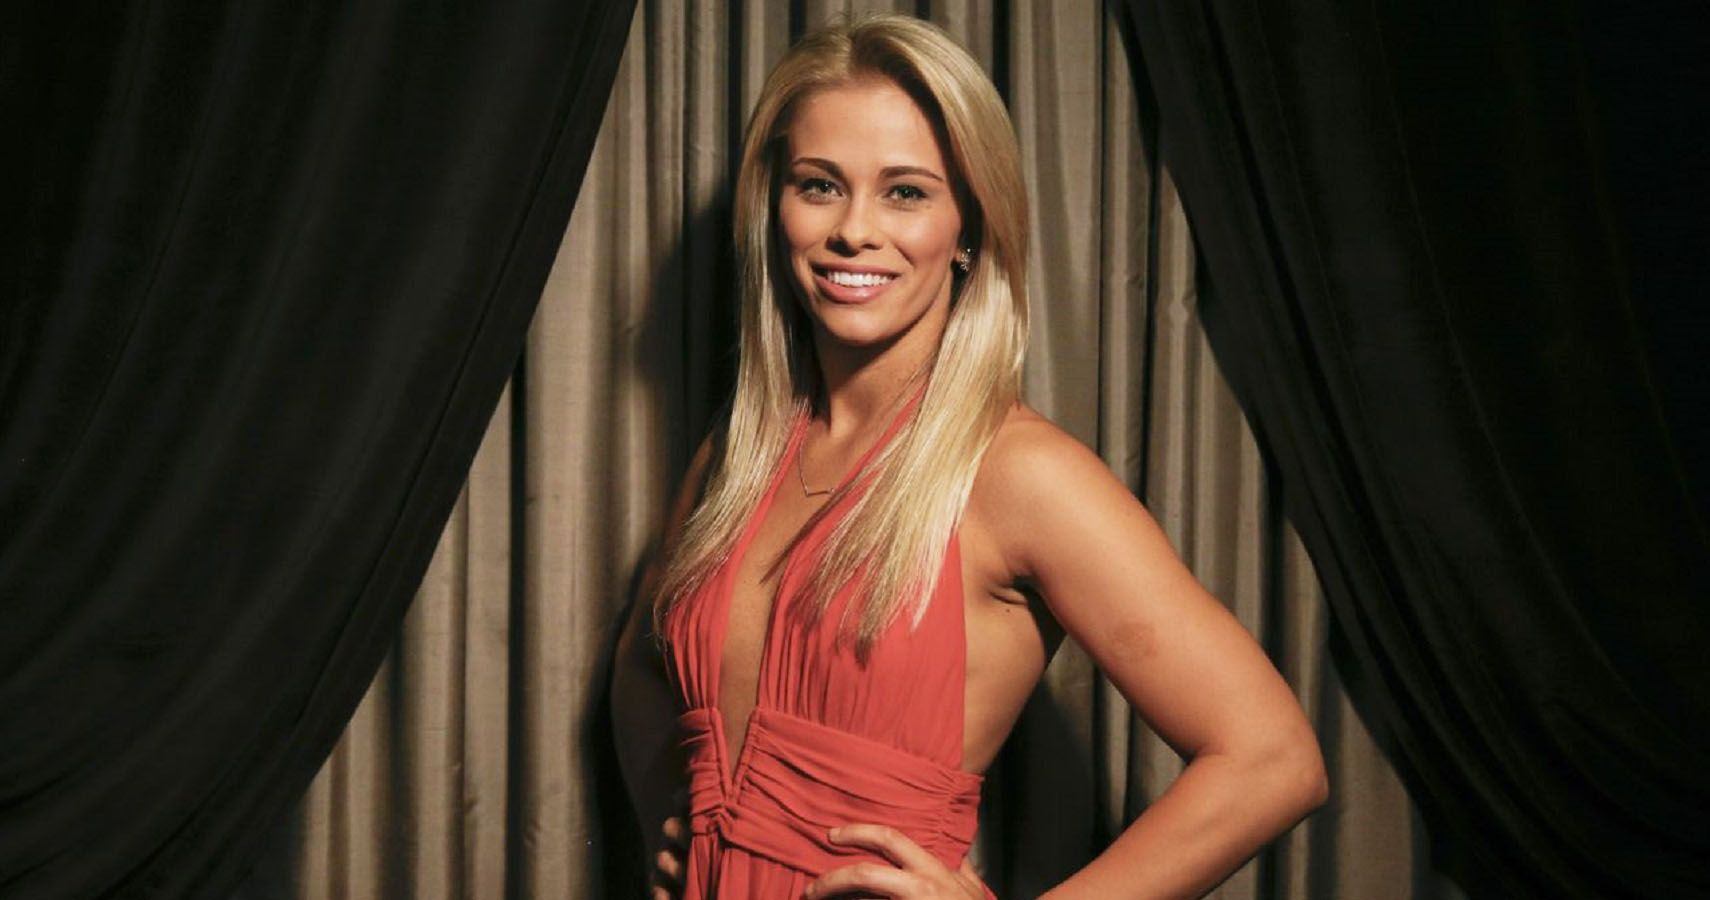 Top 15 Hottest Female Athletes Set To Break Out